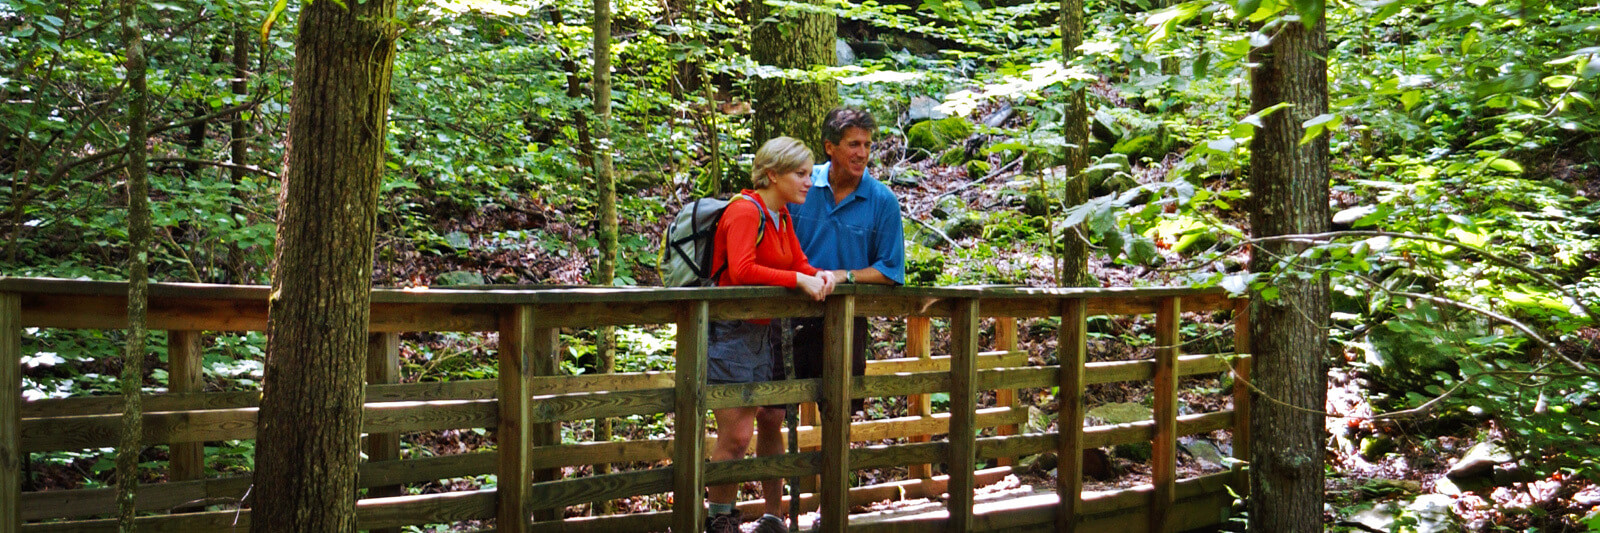 Brasstown-Valley-Hiking-Trails-Appalachian-Trail-Acitivities-Hiking-1